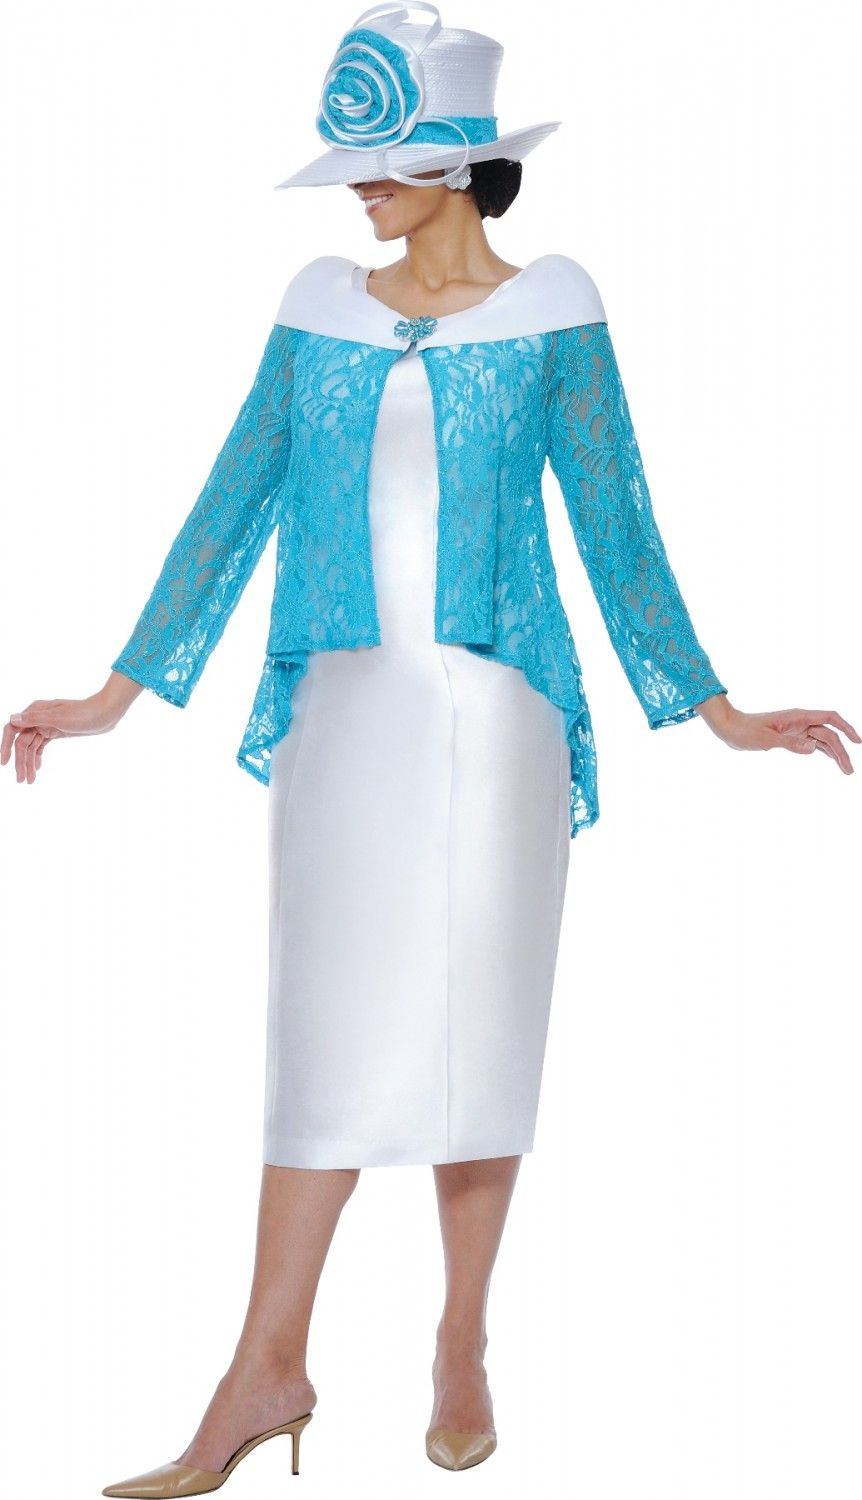 White dress for church - White Church Dress With Turquoise Lace Cover Dn5342 Divine Church Suits